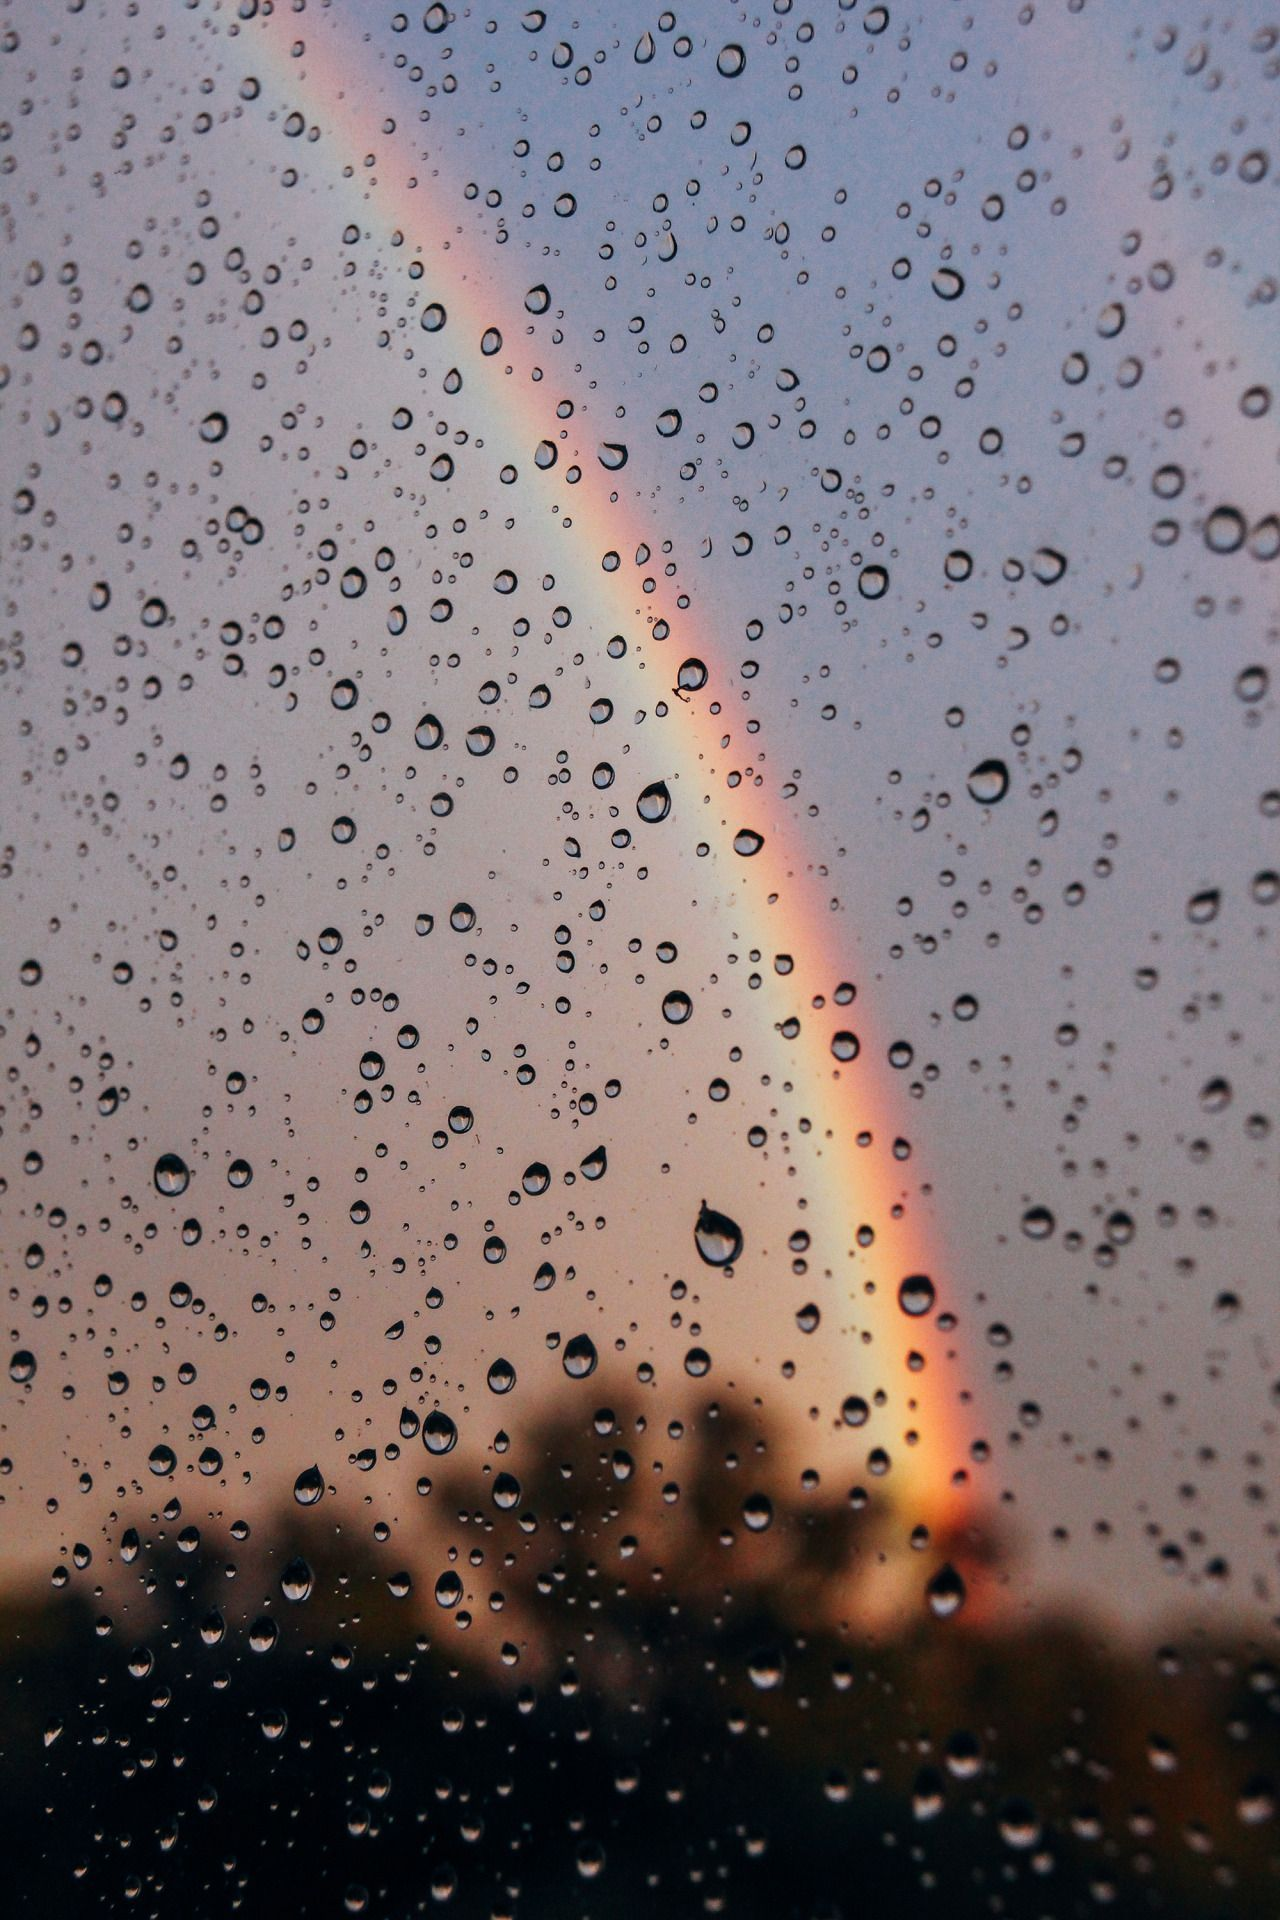 Raining Aesthetic Wallpapers 1280x1920